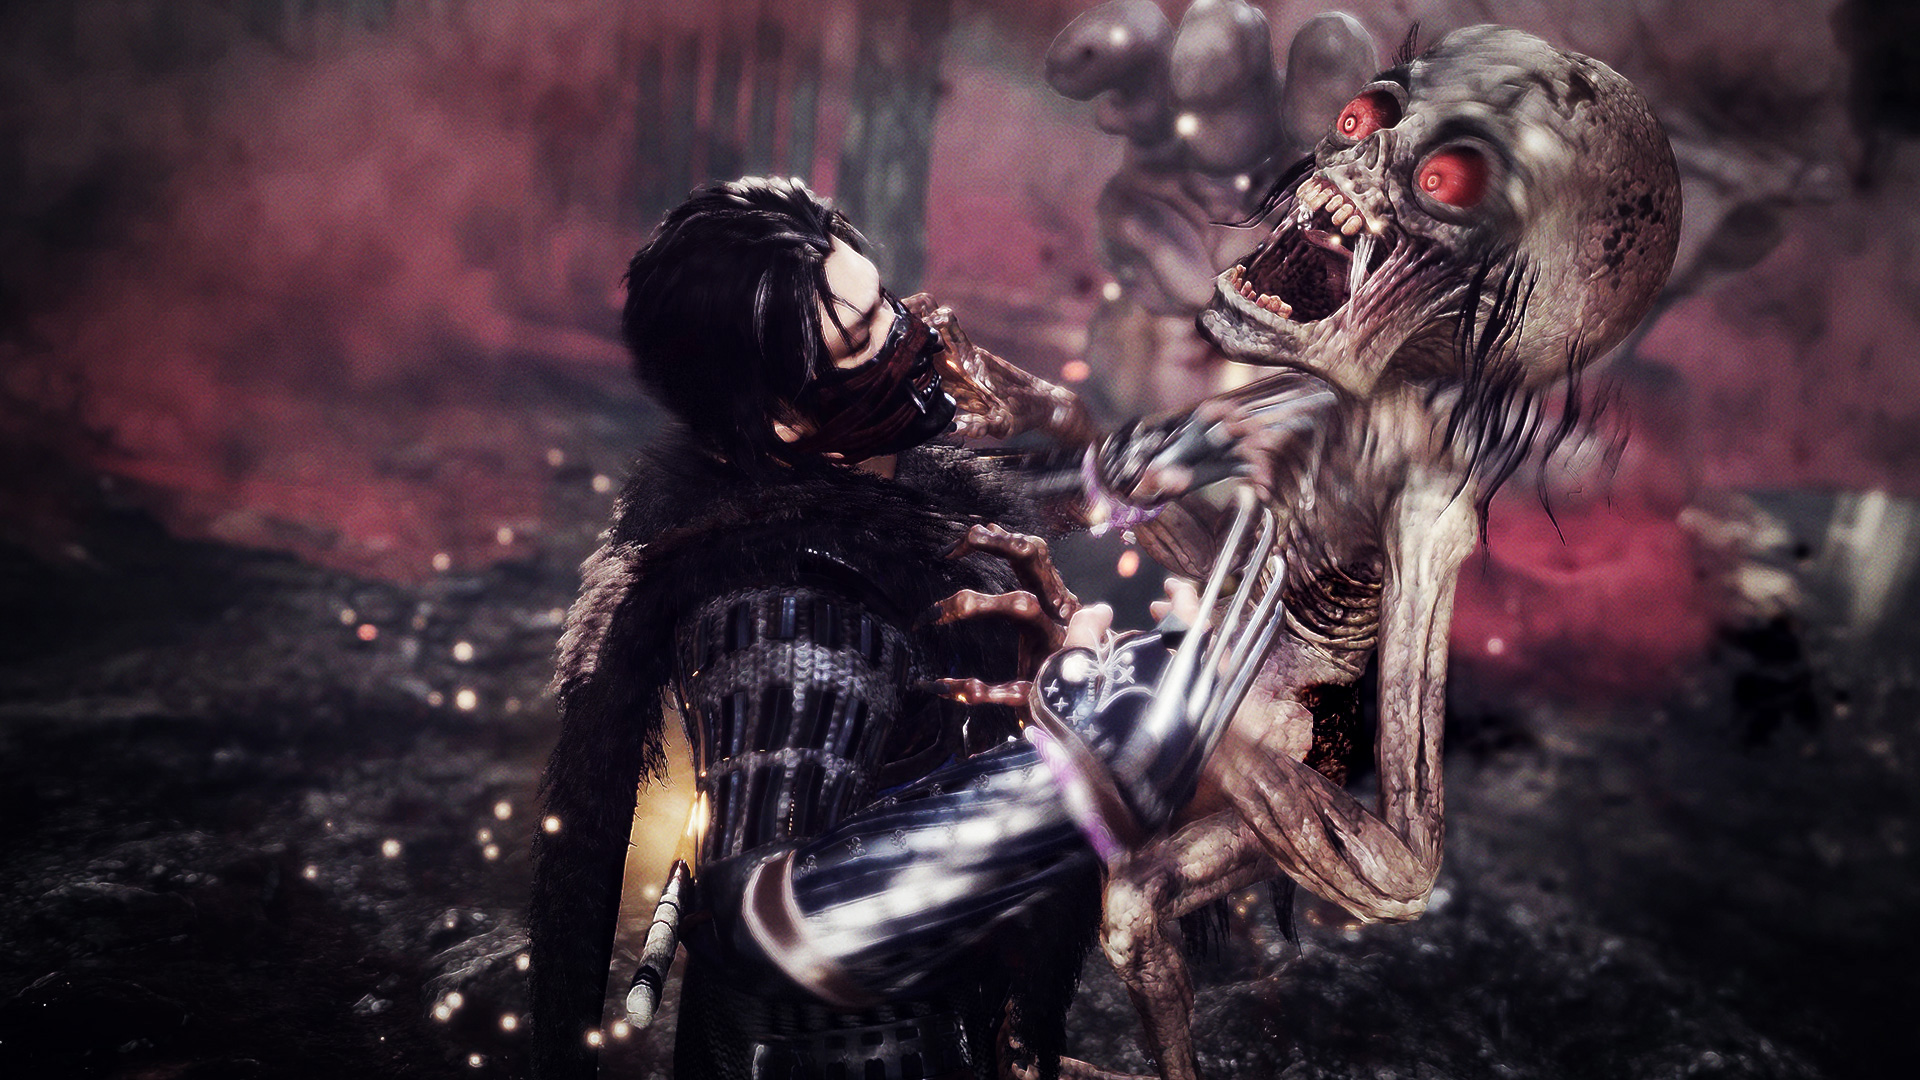 Team Ninja is moving on from Nioh, but Yasuda likes the idea of an open world game with 'a lot of intensity' screenshot